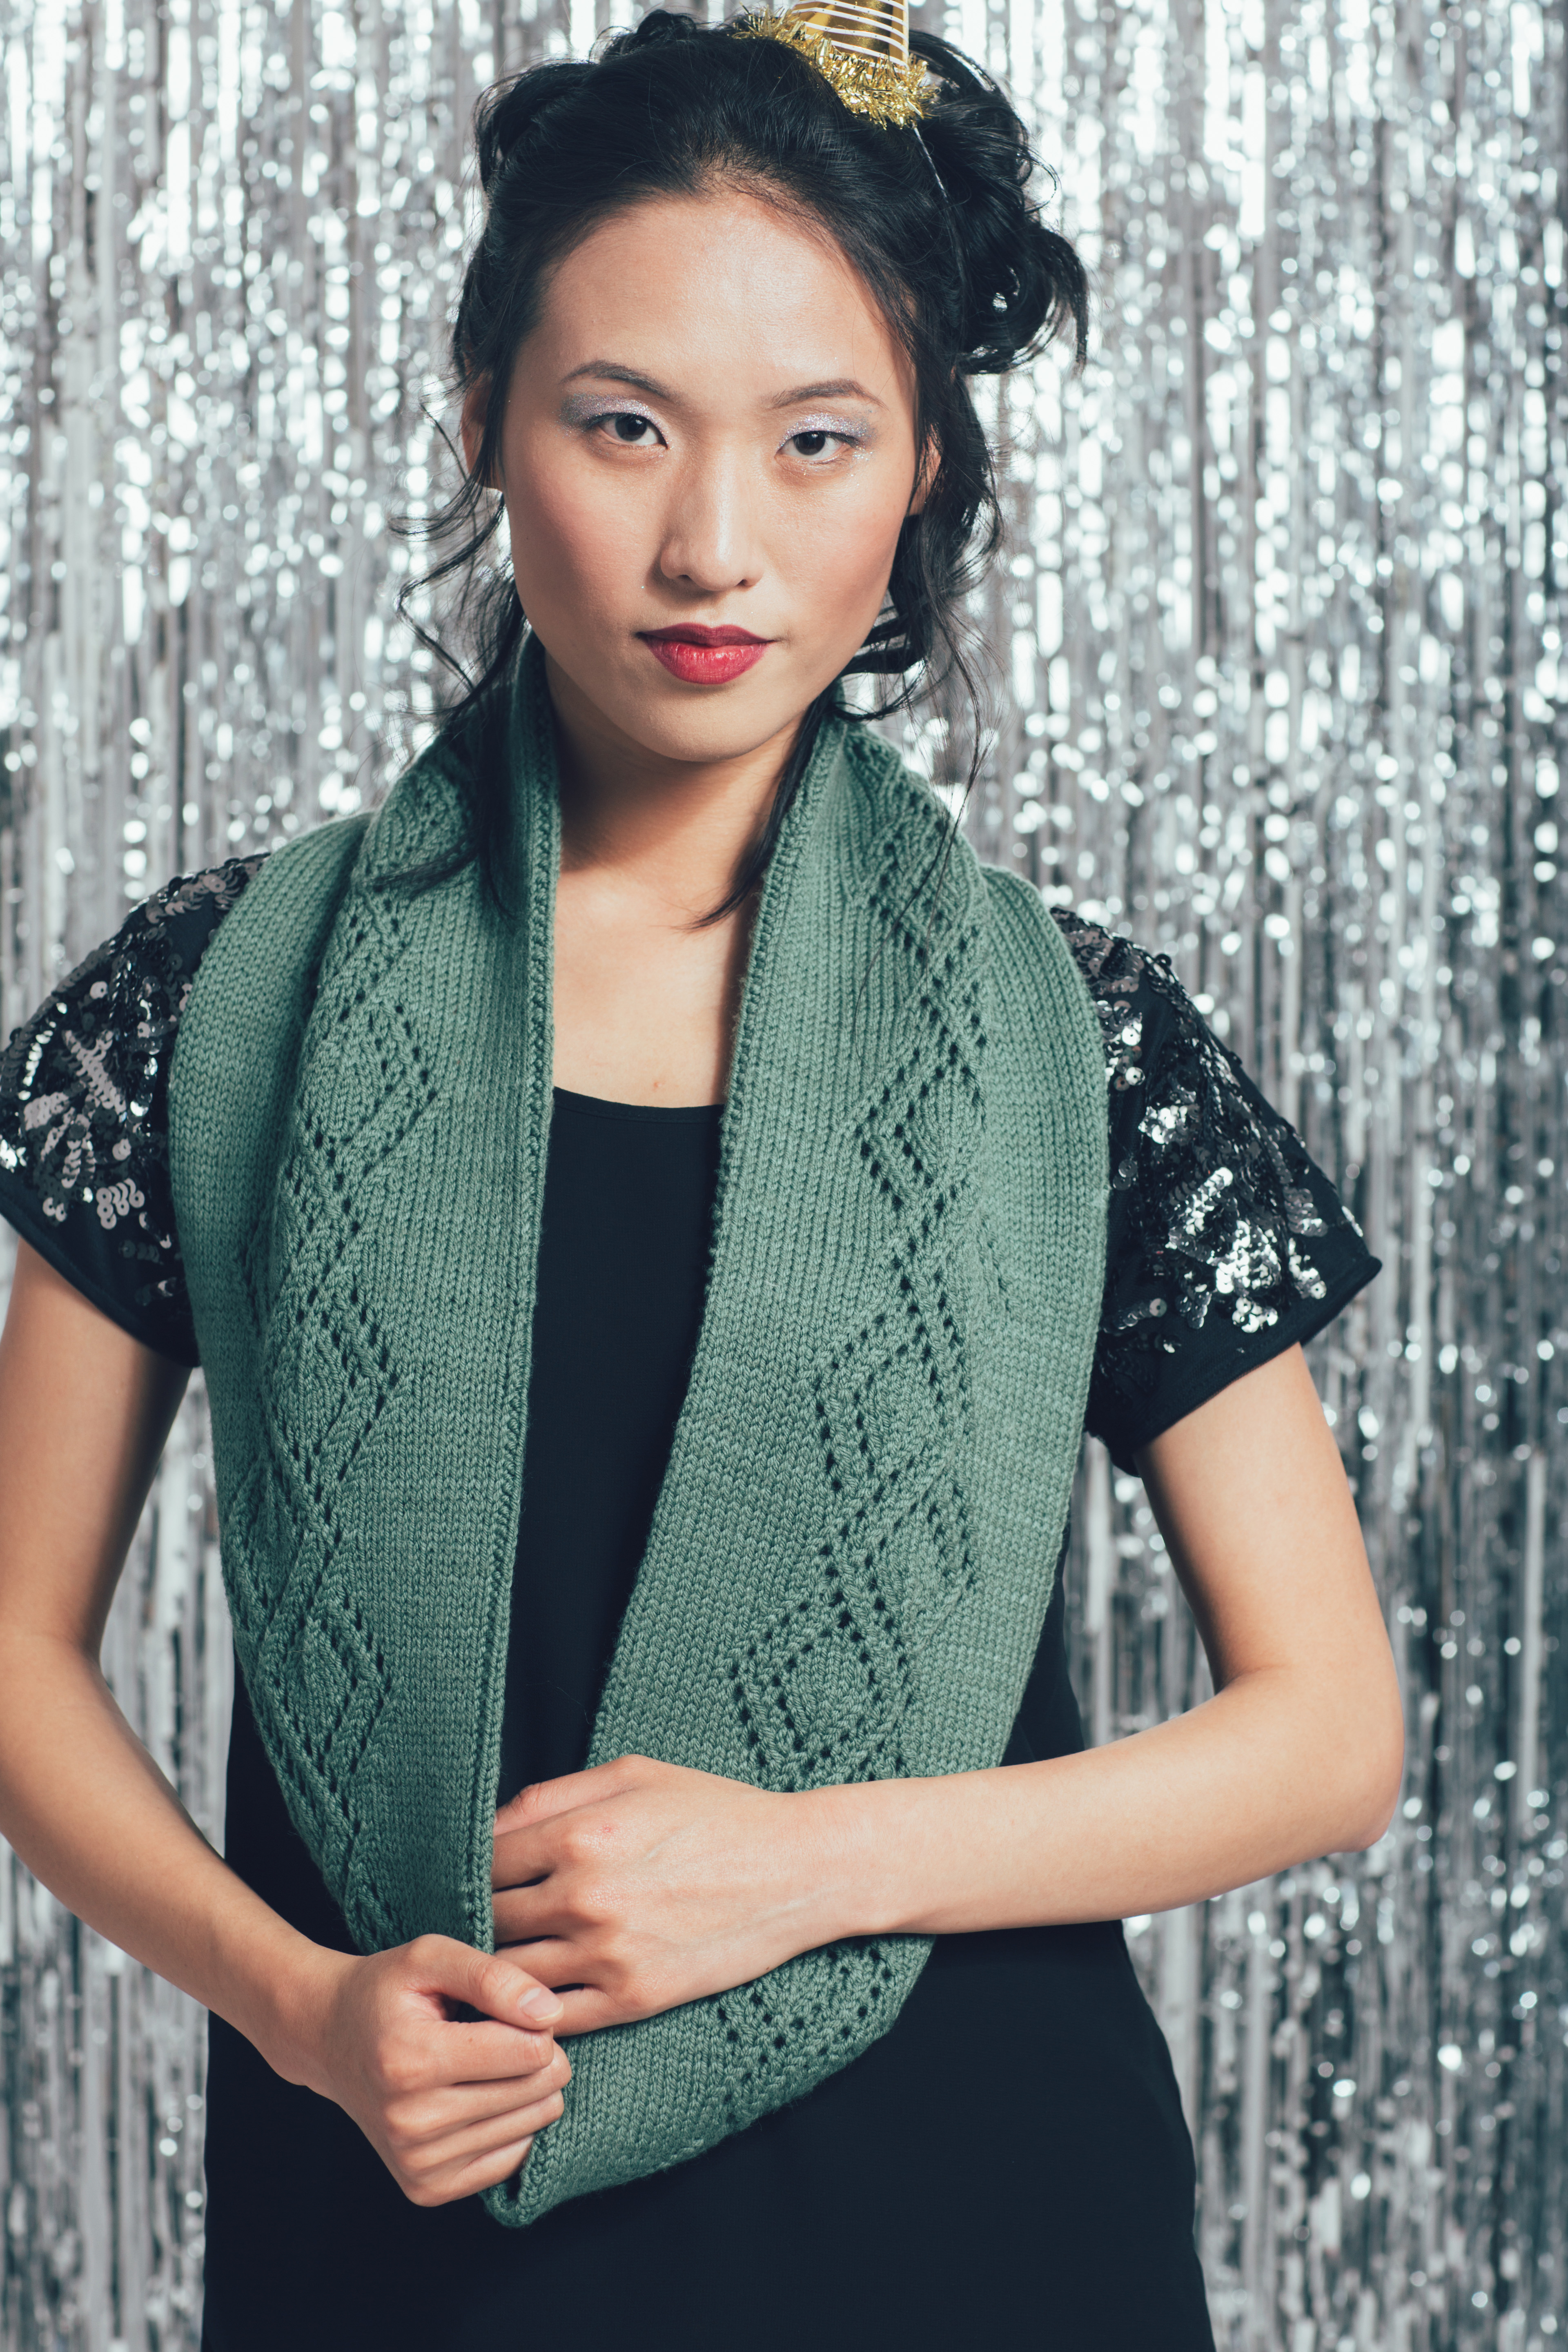 Spree Cowl knitting pattern by Andrea Rangel from knitscene Winter 2016